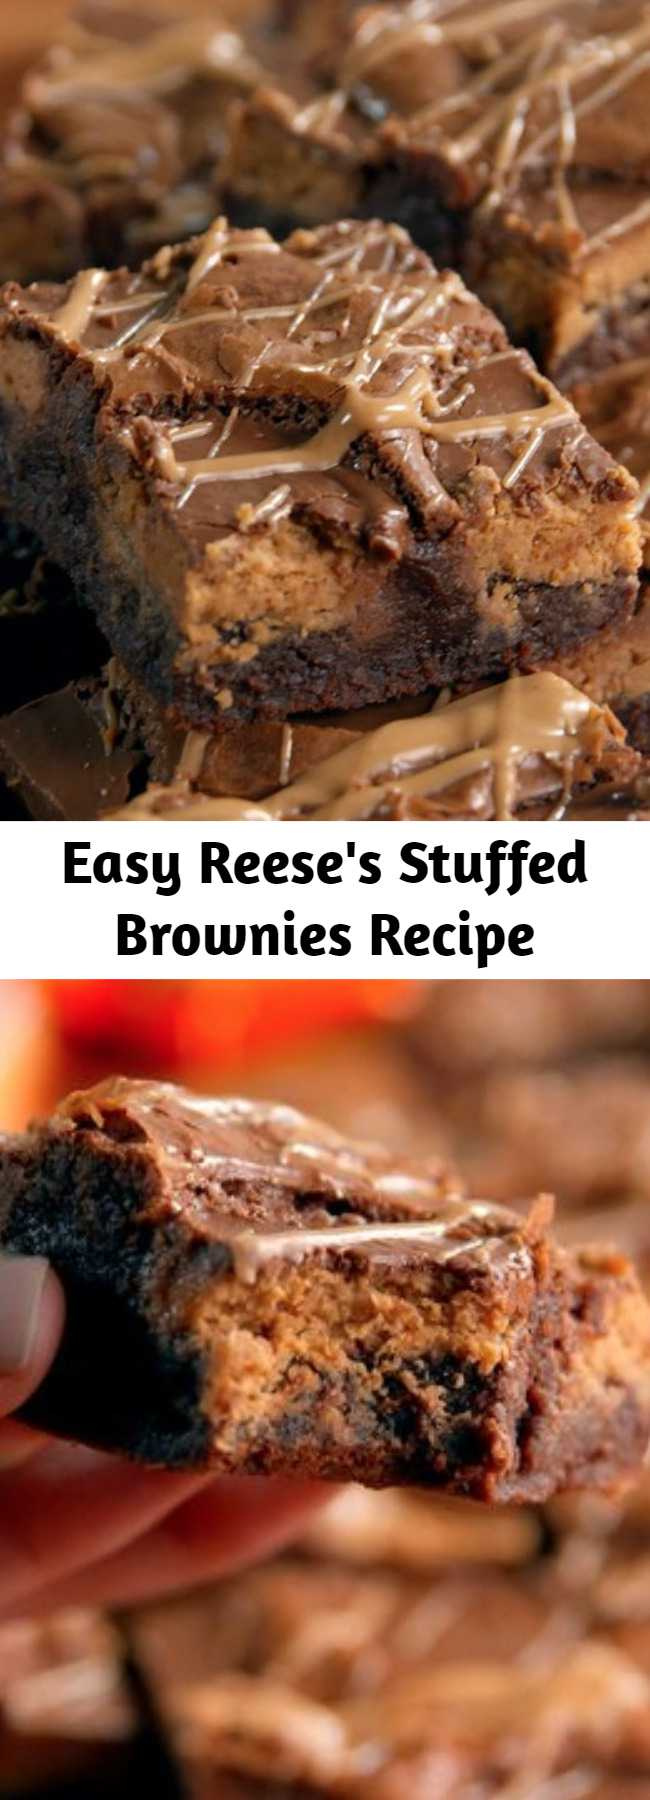 Easy Reese's Stuffed Brownies Recipe - Give your average brownies a major upgrade with this recipe for Reese's stuffed brownies. But seriously, how could they not be good?